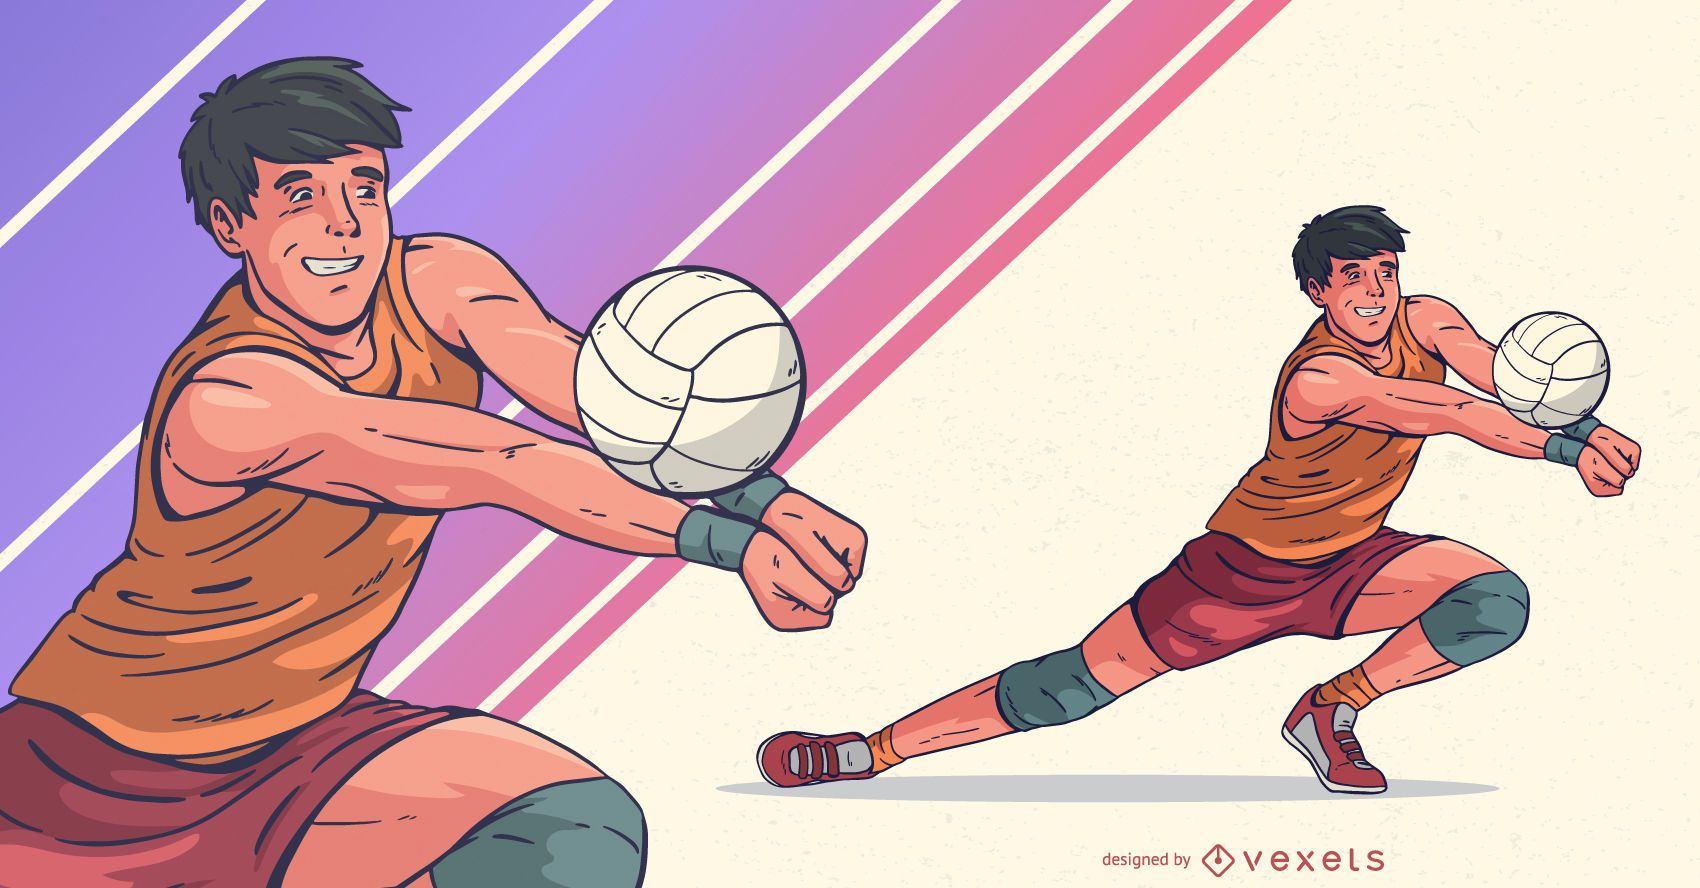 Male Volleyball Player Sports Illustration